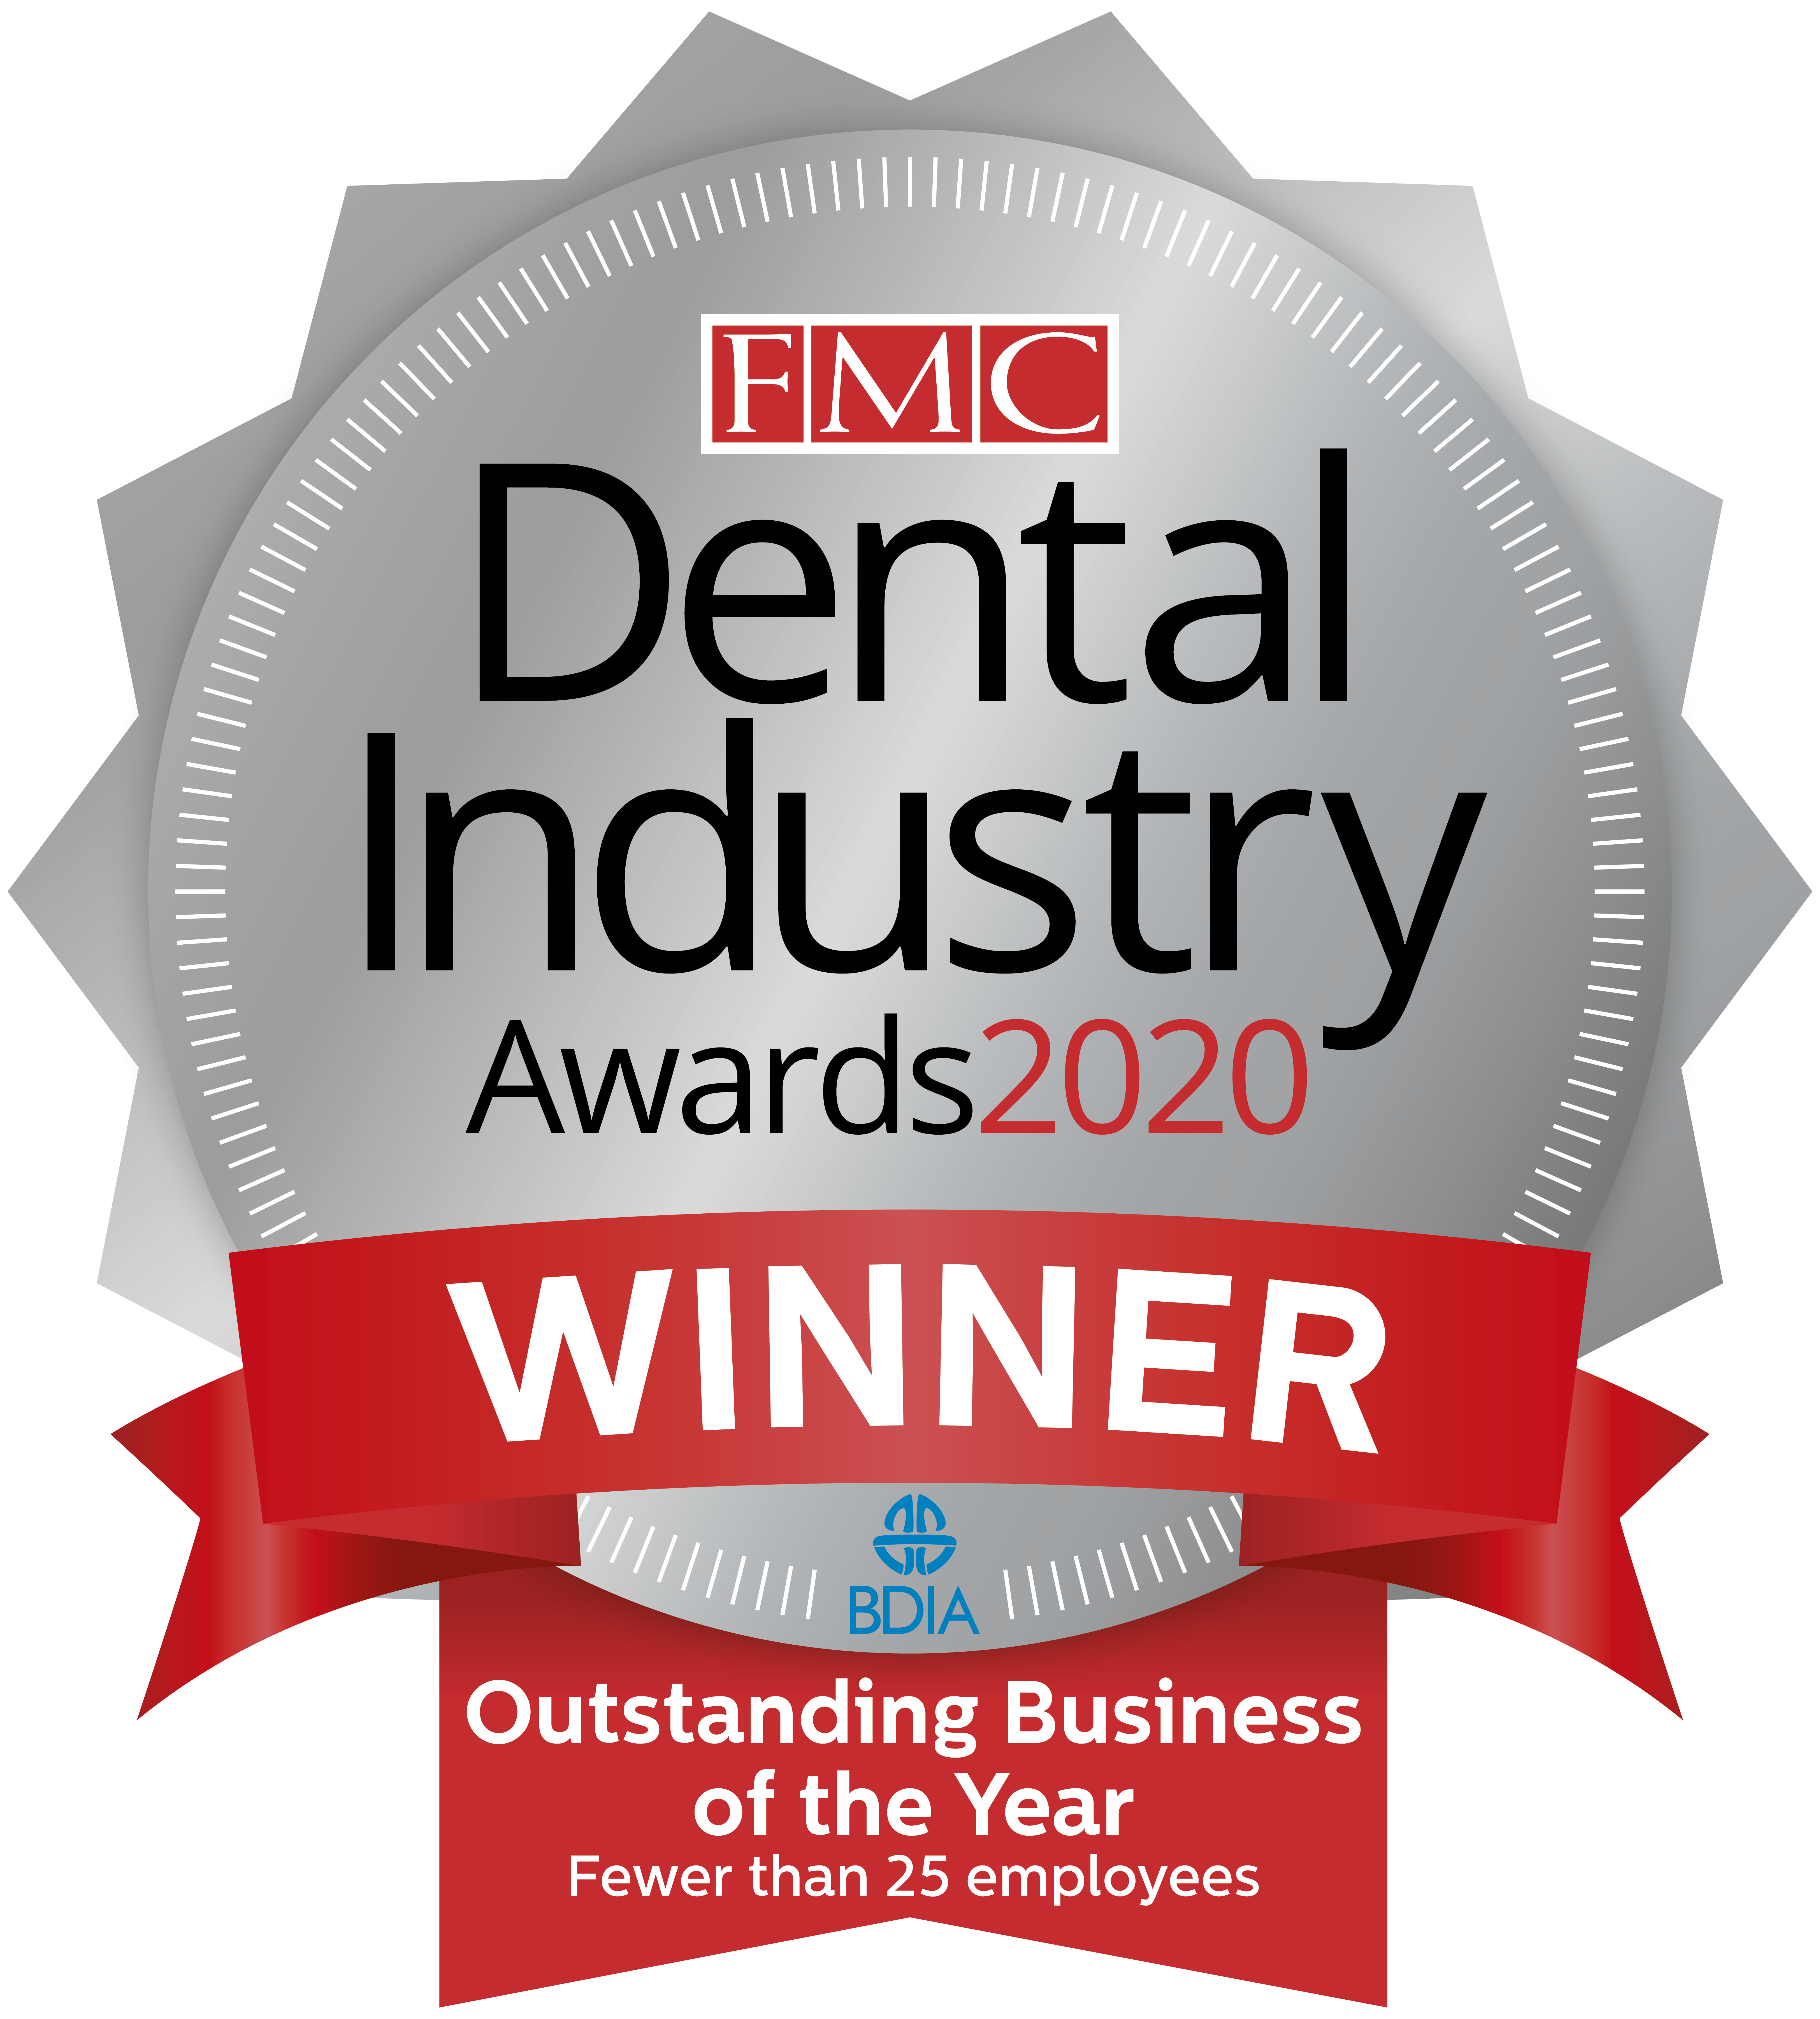 Awards 2020 Outstanding Business